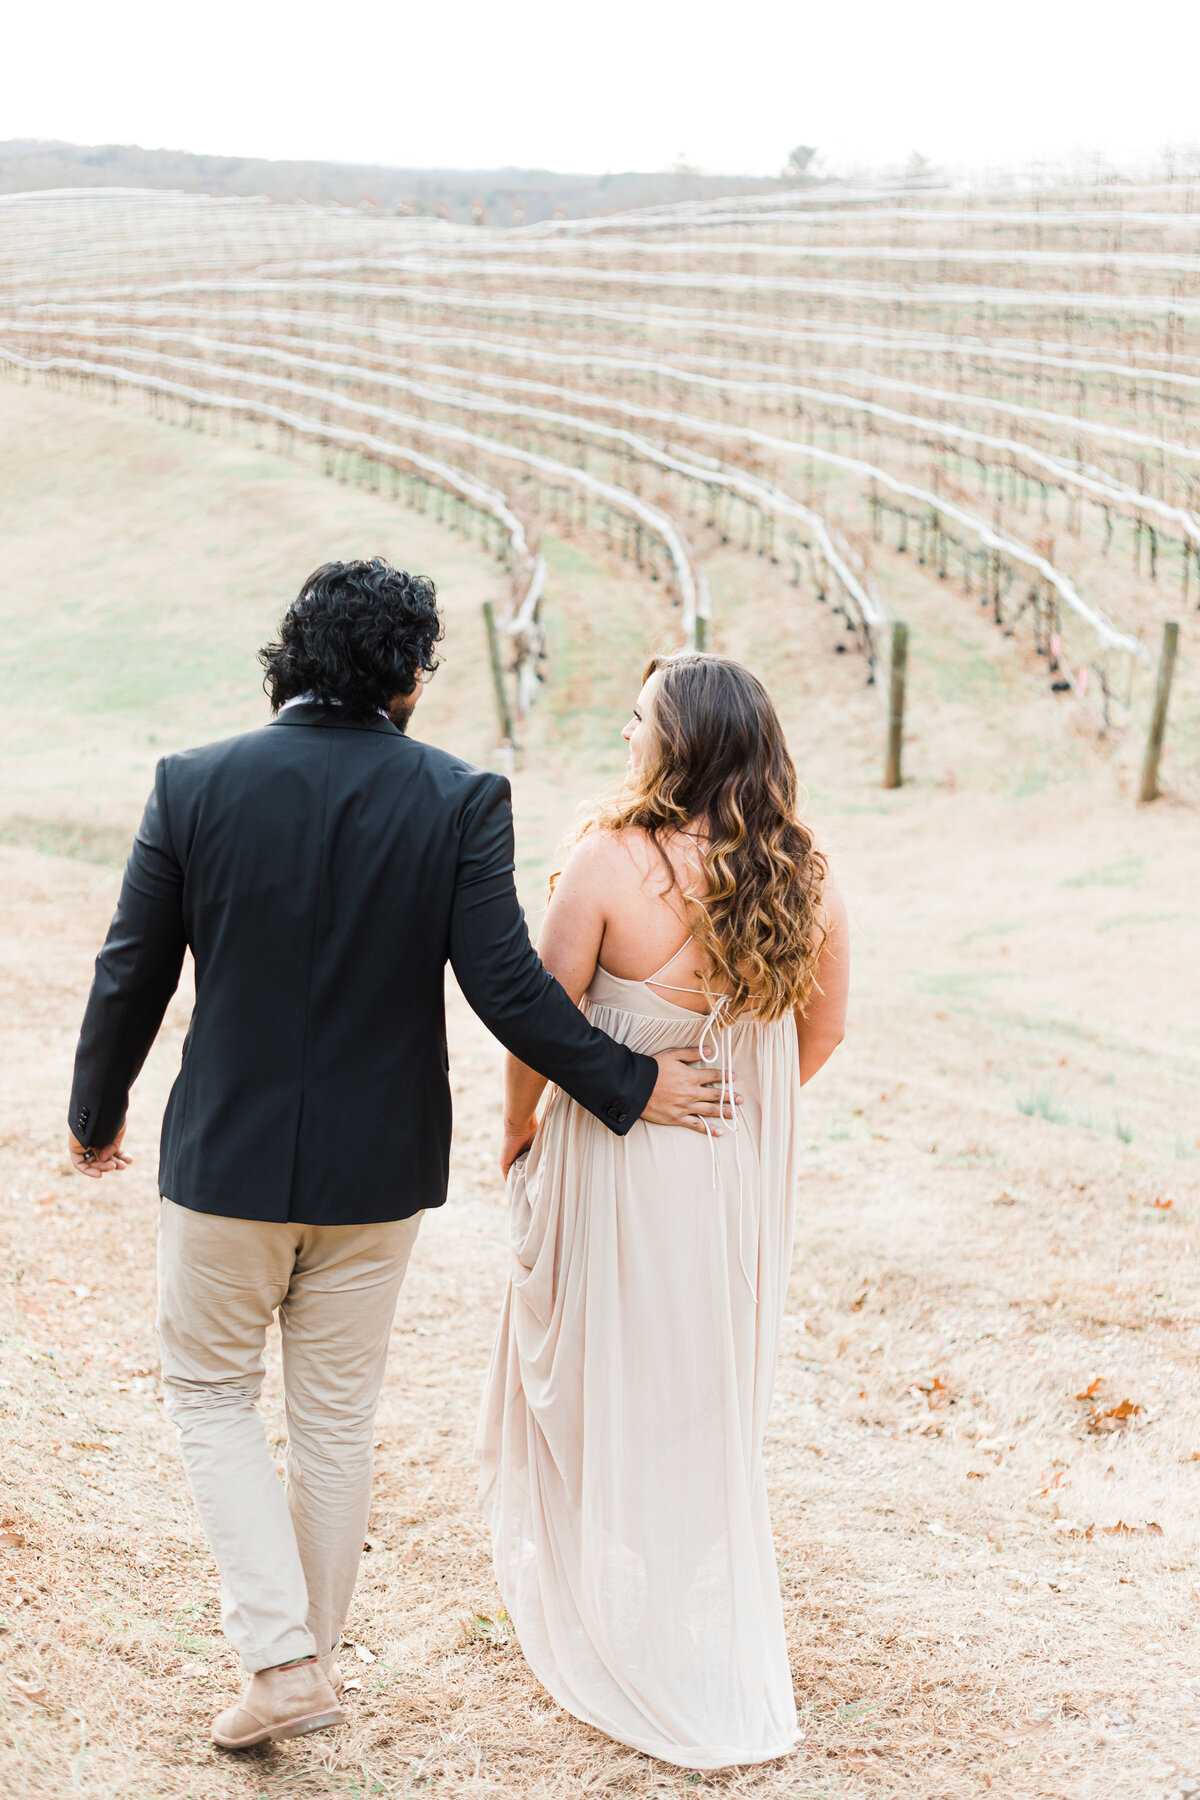 Motaluce Winery, Gainesville, GA Couple Engagement Anniversary Photography Session by Renee Jael-11